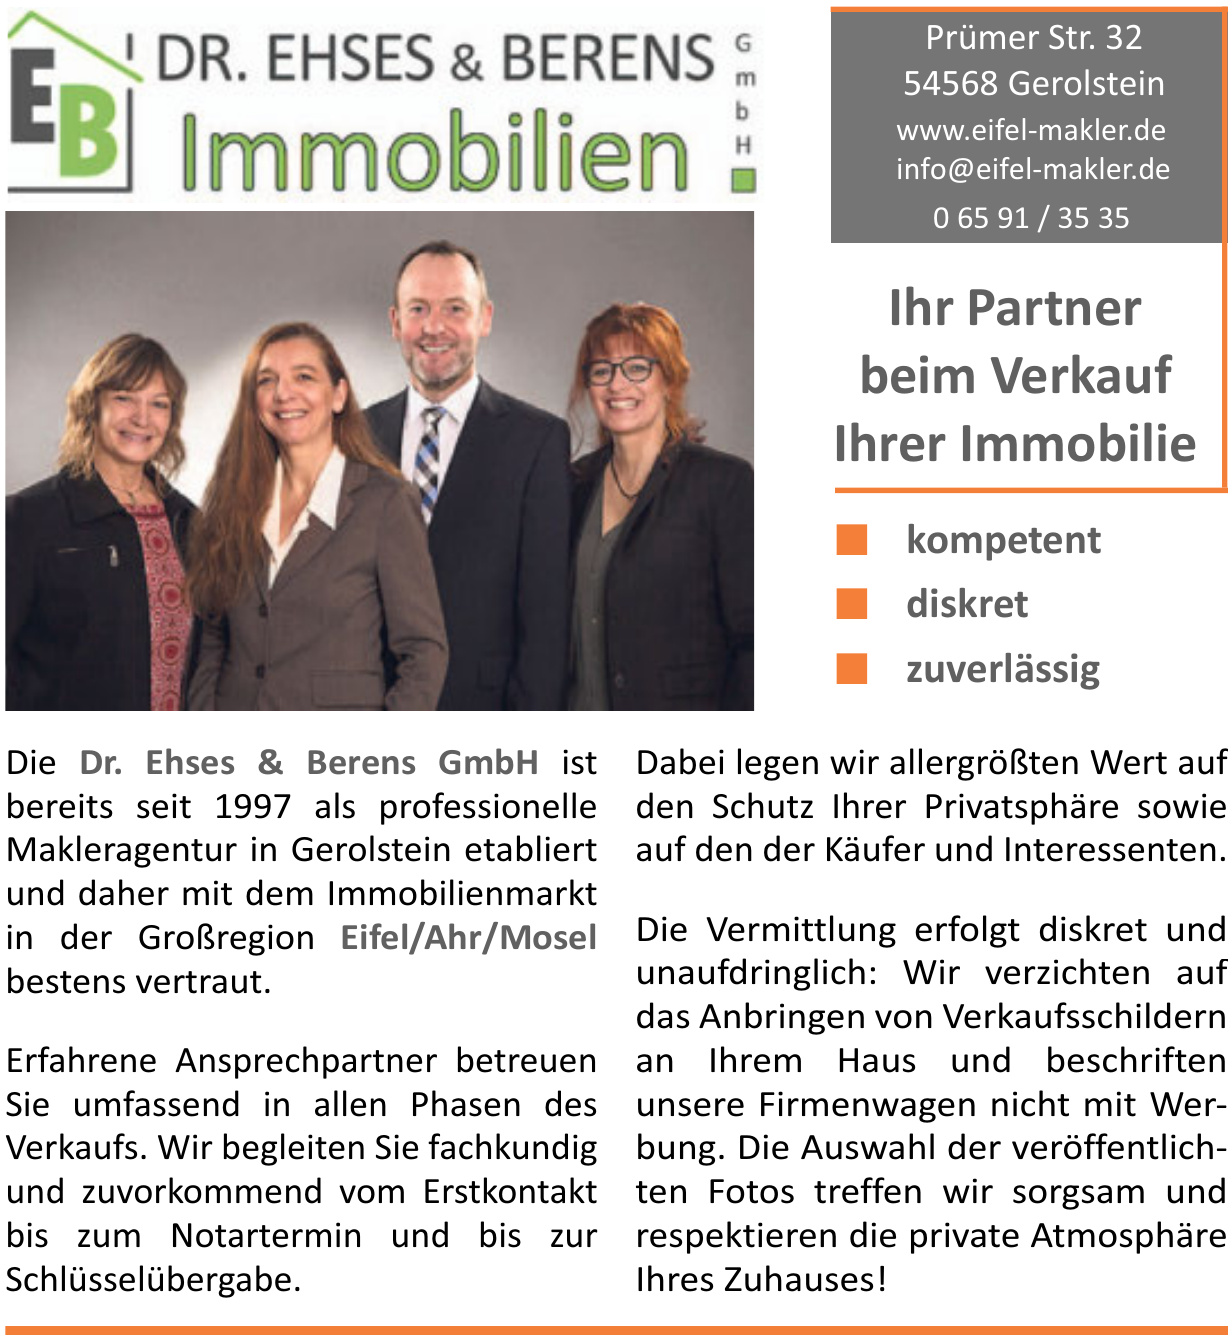 EB Immobilien Dr. Ehses & Berens GmbH